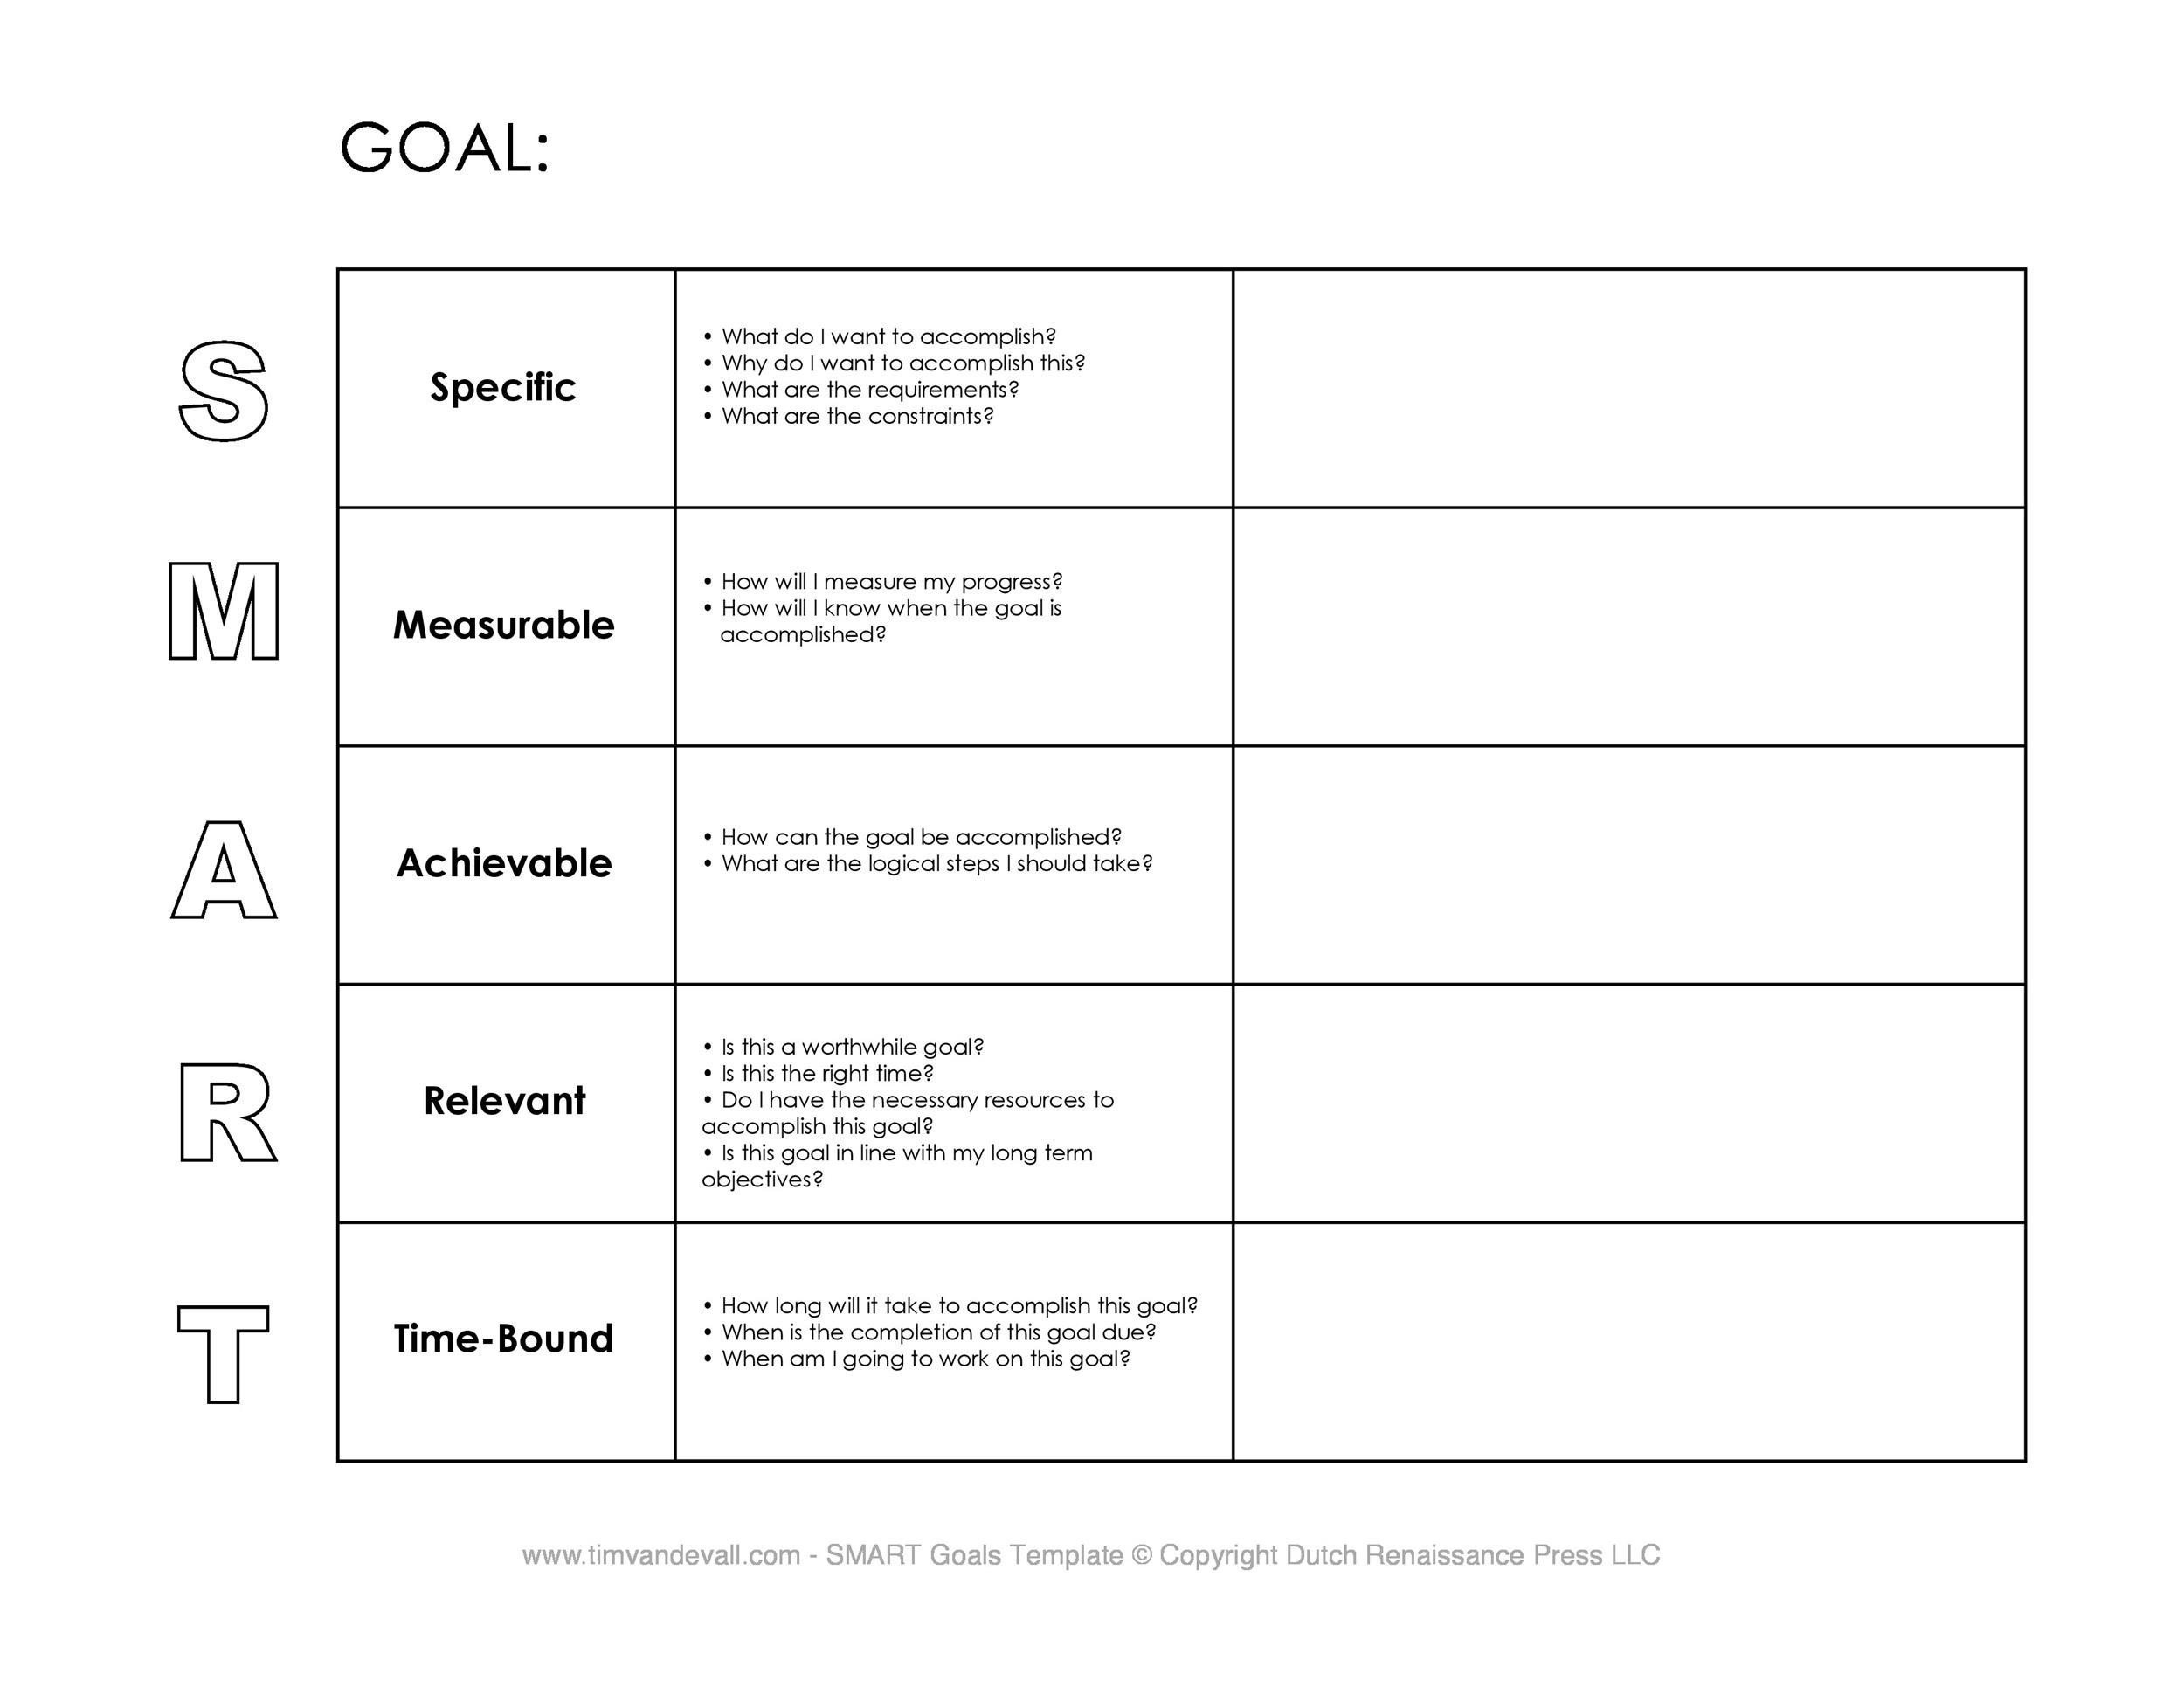 goals and objectives template word - Acurlunamedia